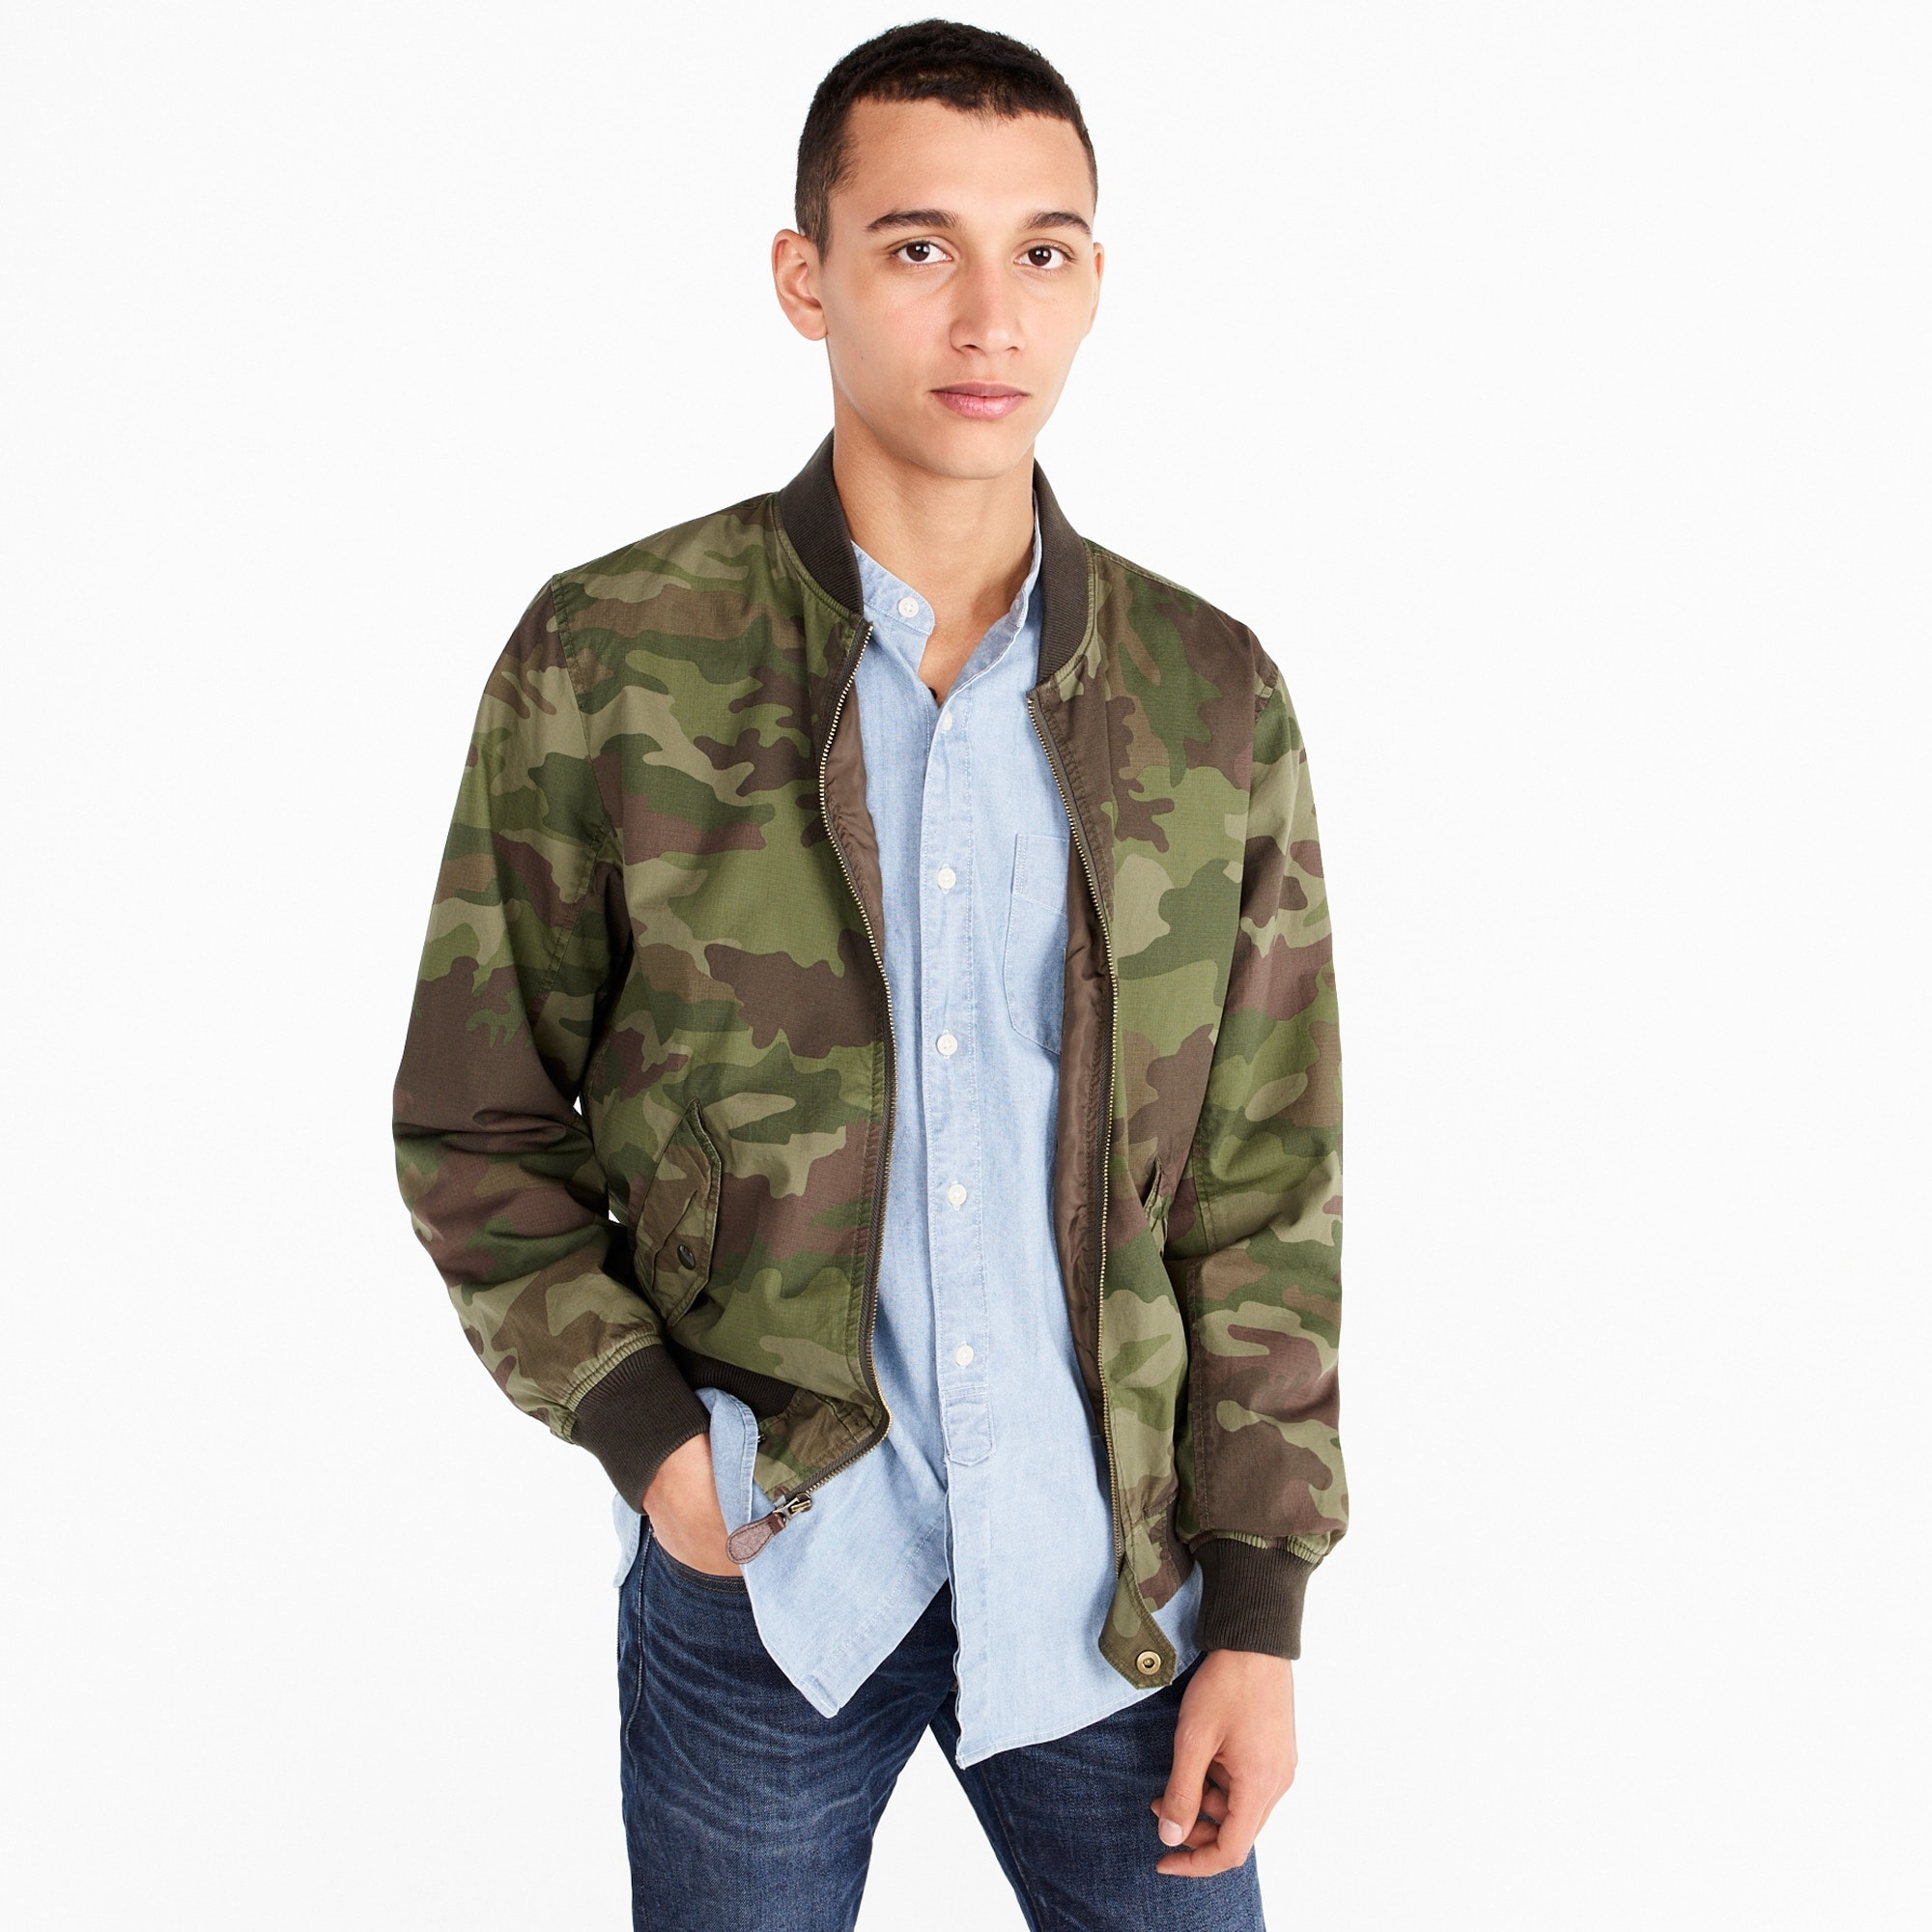 Image 1 for Wallace & Barnes MA-1 bomber jacket in camo